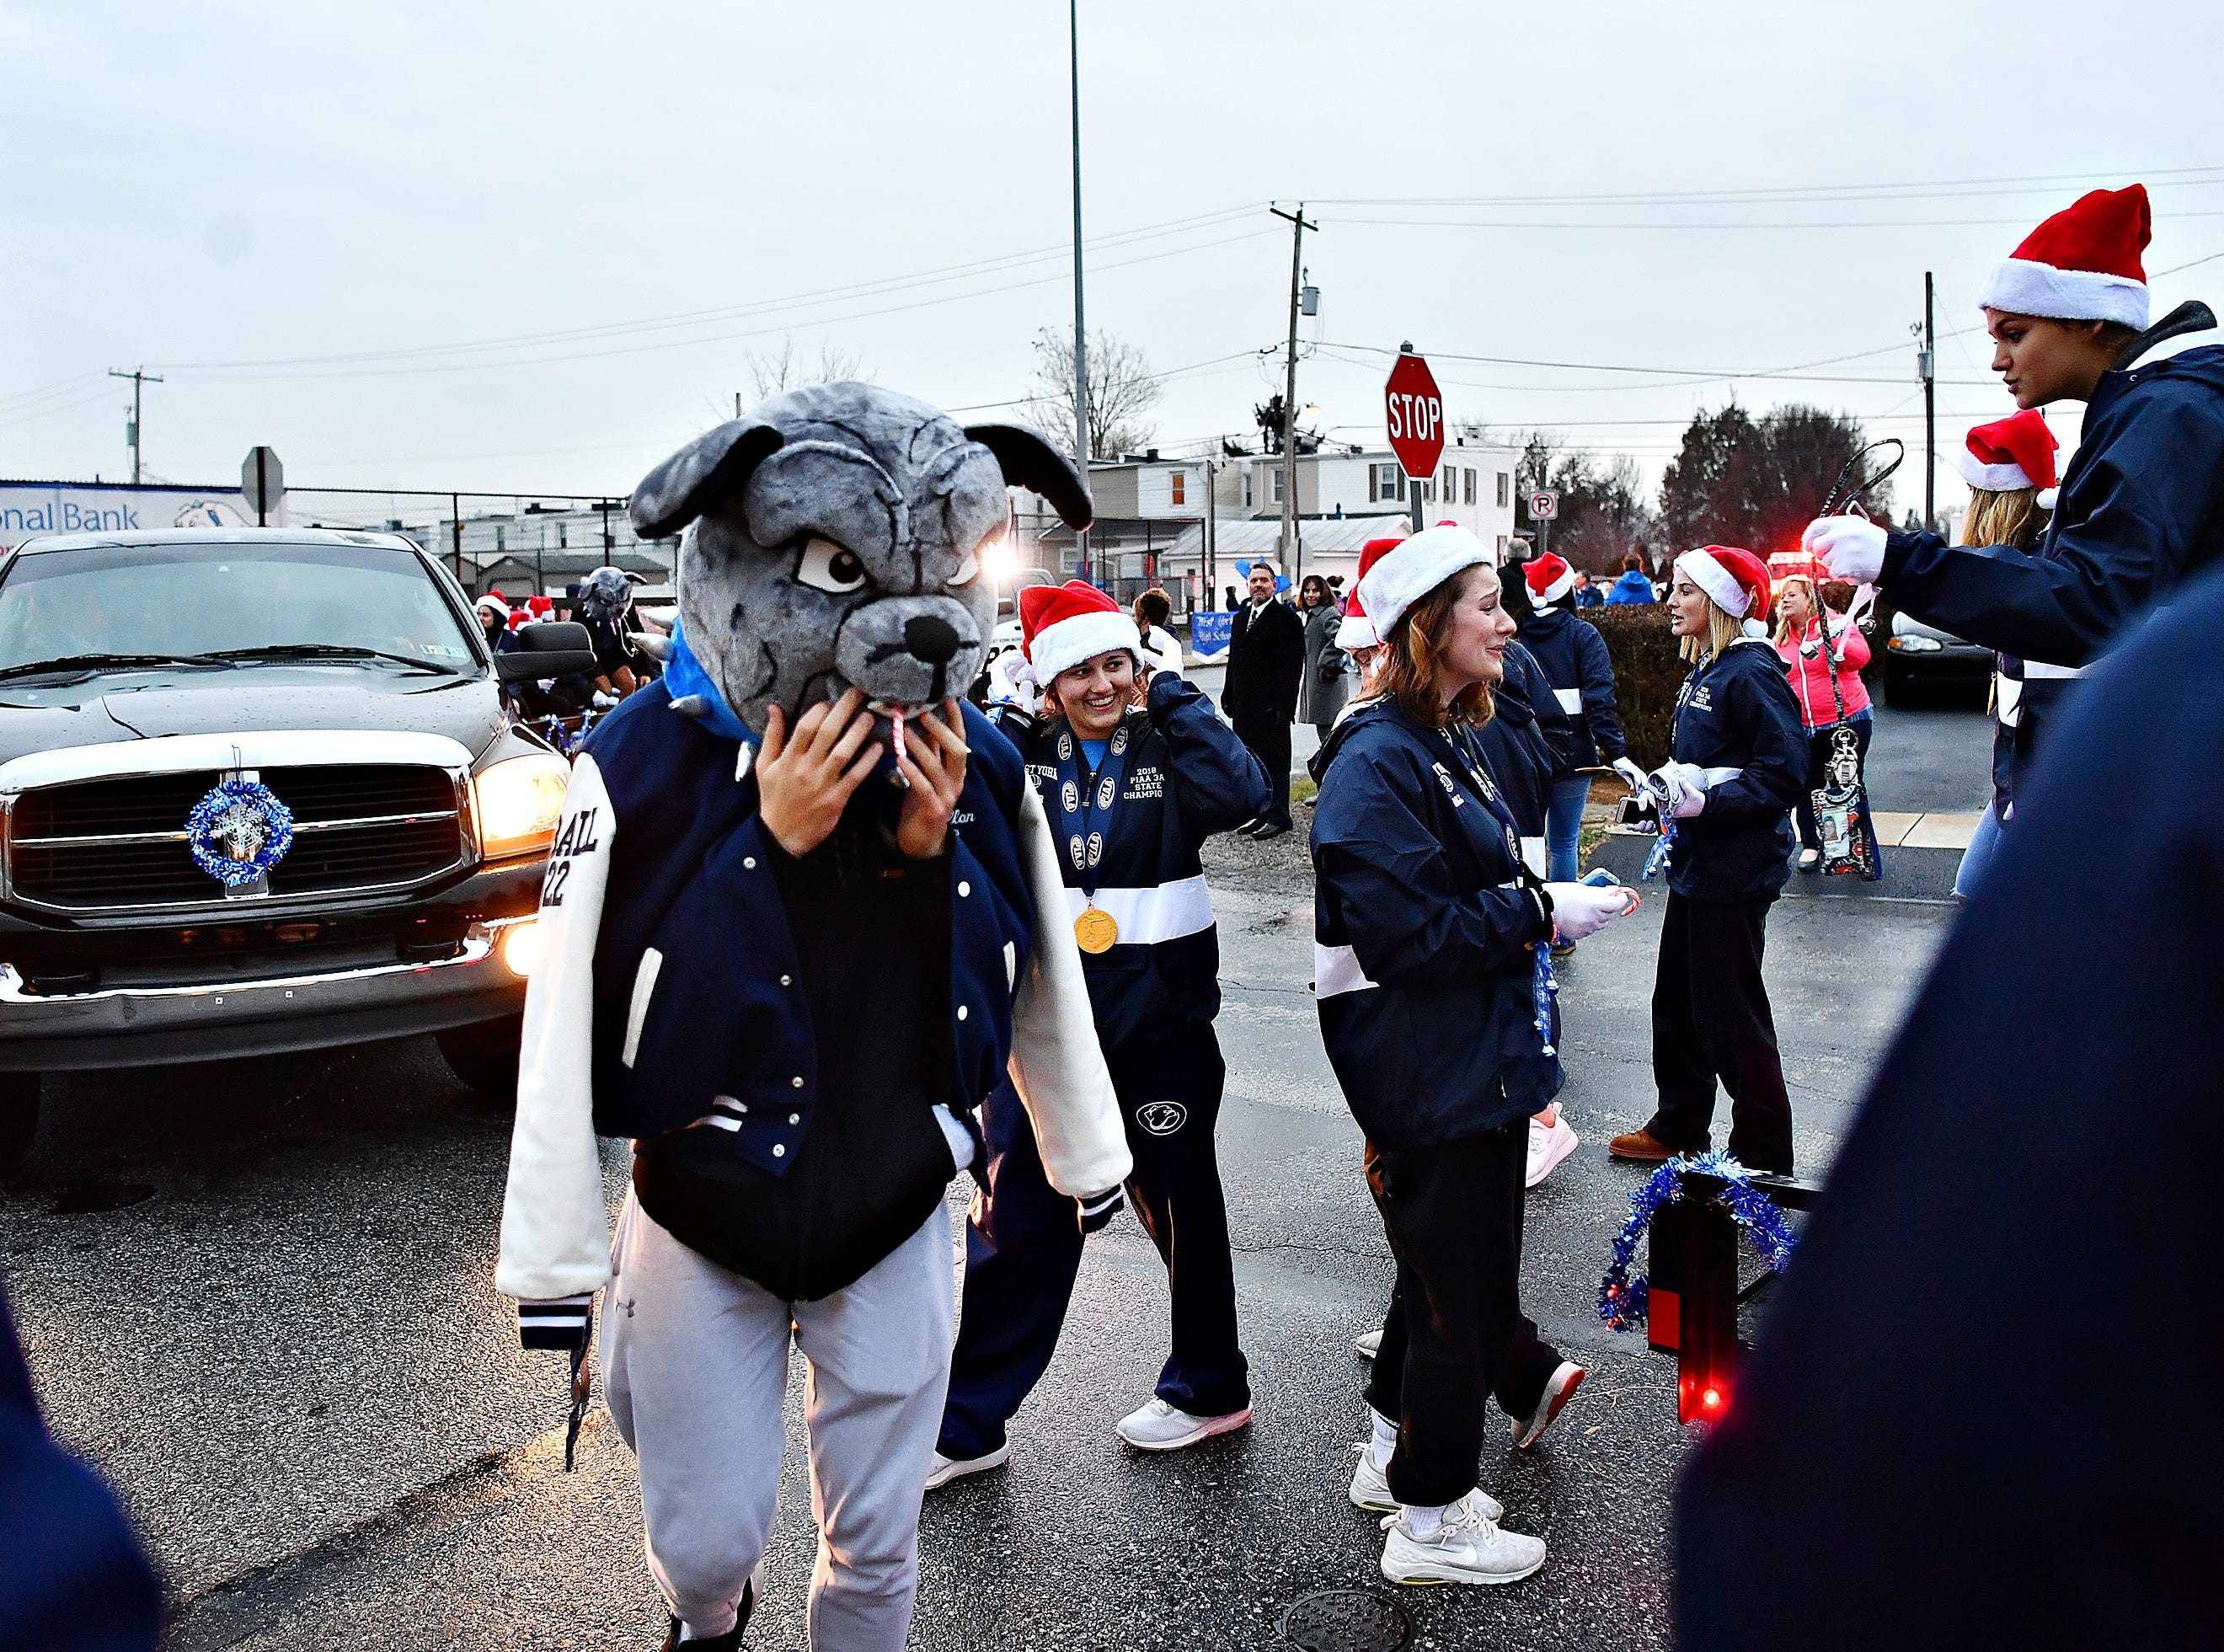 The 2018 PIAA 3-A State Champion Lady Bulldogs Volleyball team are honored following a parade at West York Area High School in West Manchester Township, Friday, Nov. 30, 2018. Dawn J. Sagert photo